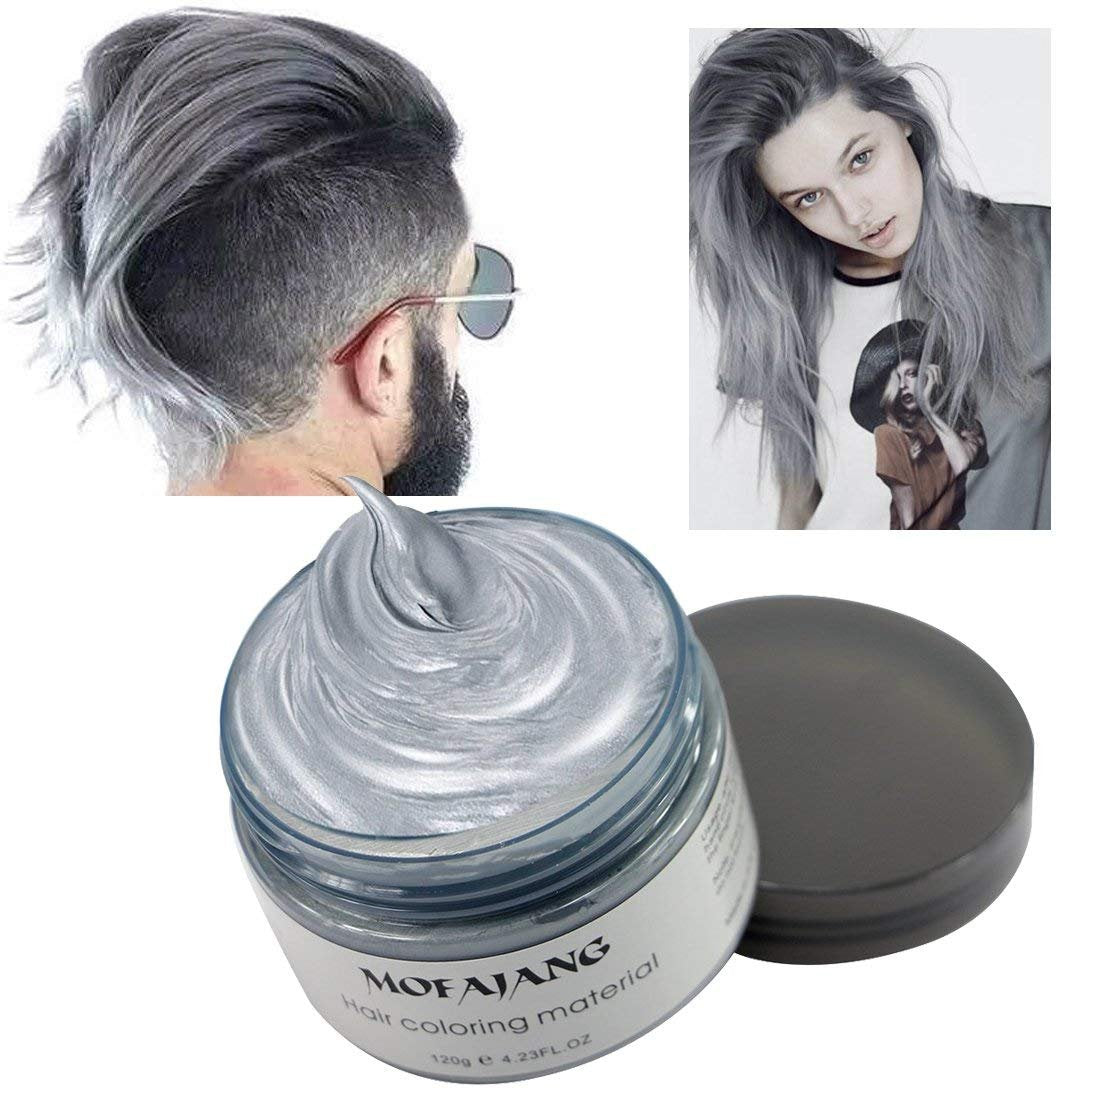 Mofajang Hair Color Wax - Disposable Washable Temporary Color Dye - Silver - Hair Color